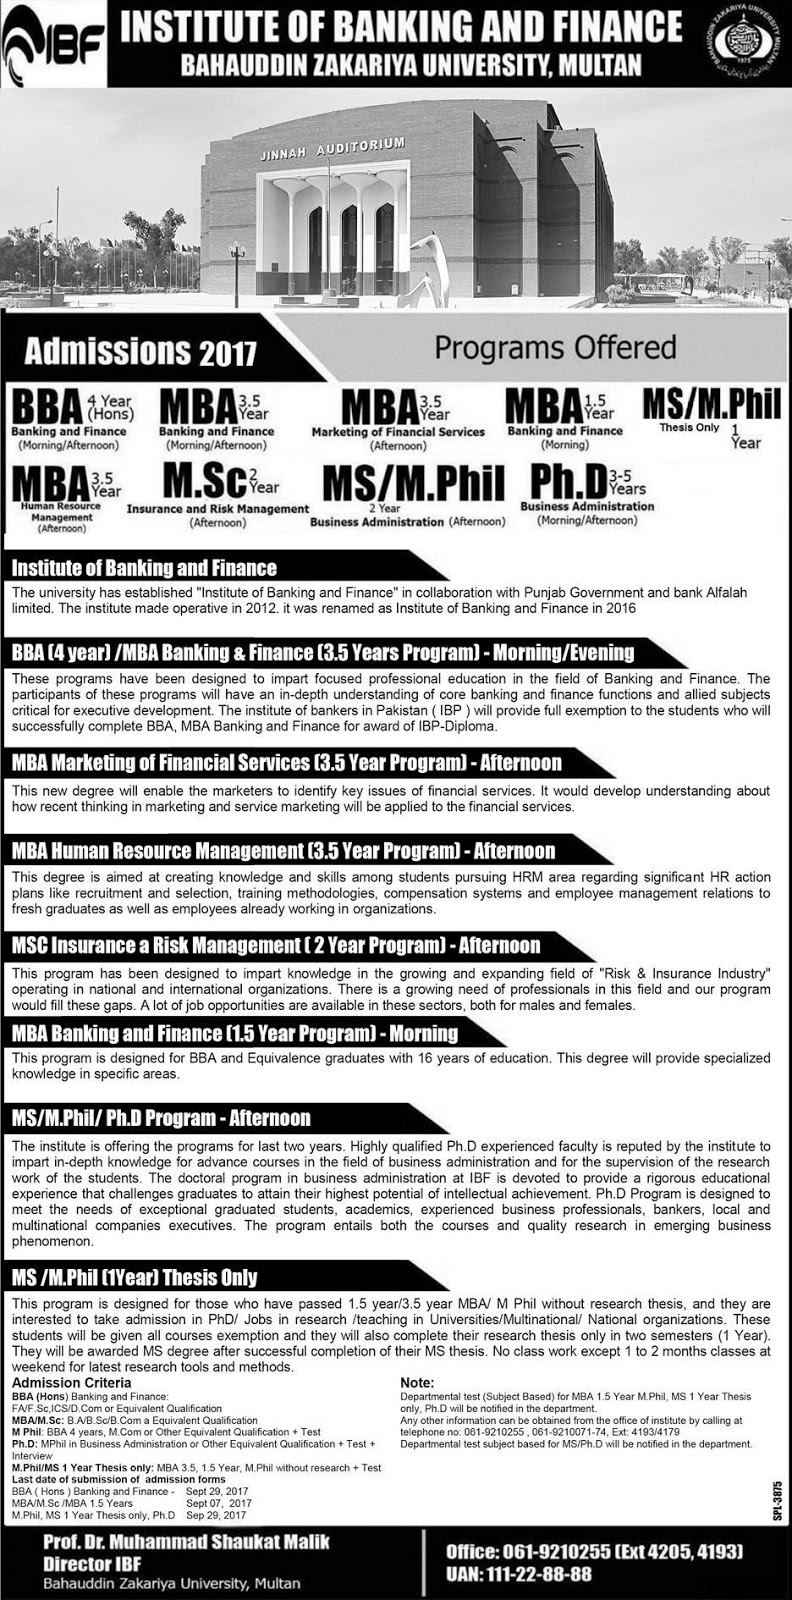 Admissions Open in Institute of Banking and Finance BZU 2017